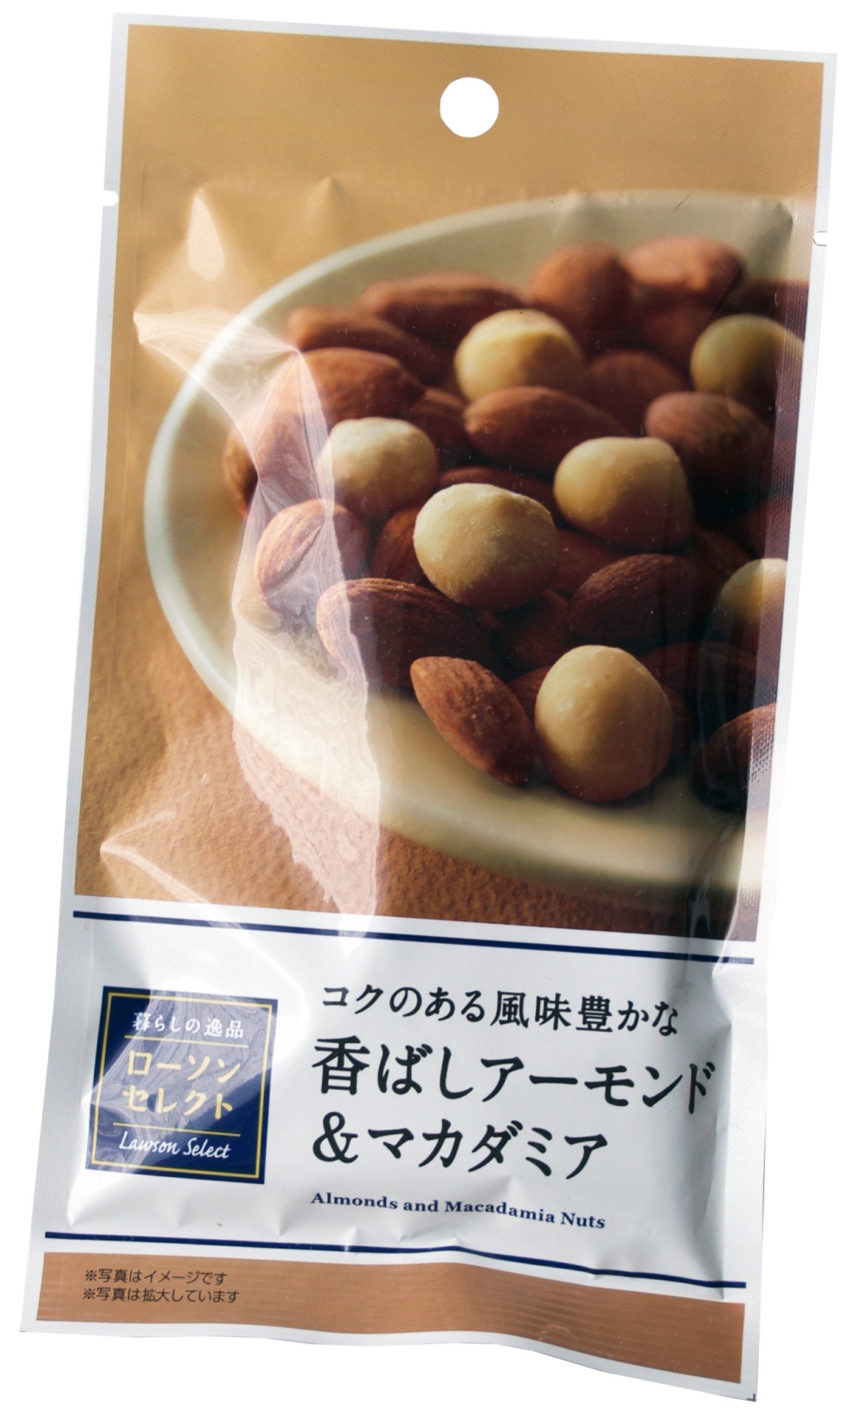 nuts, healthy convenience store snack japan